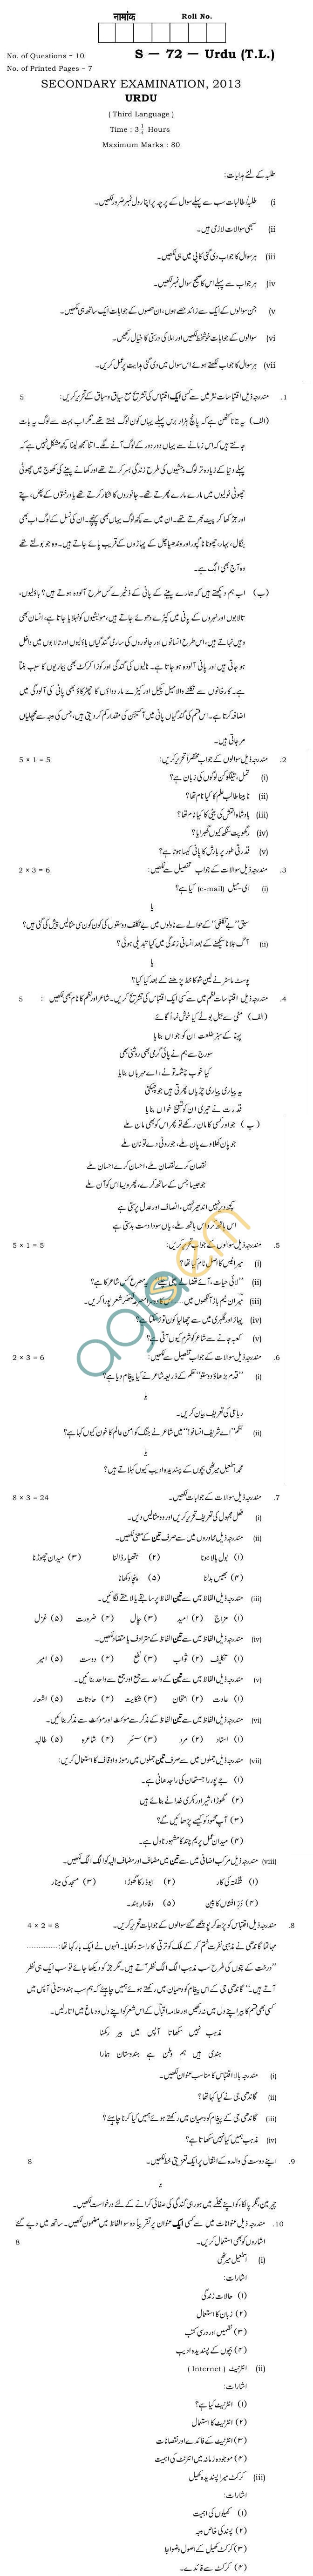 Rajasthan Board Secondary Urdu Question Paper 2013